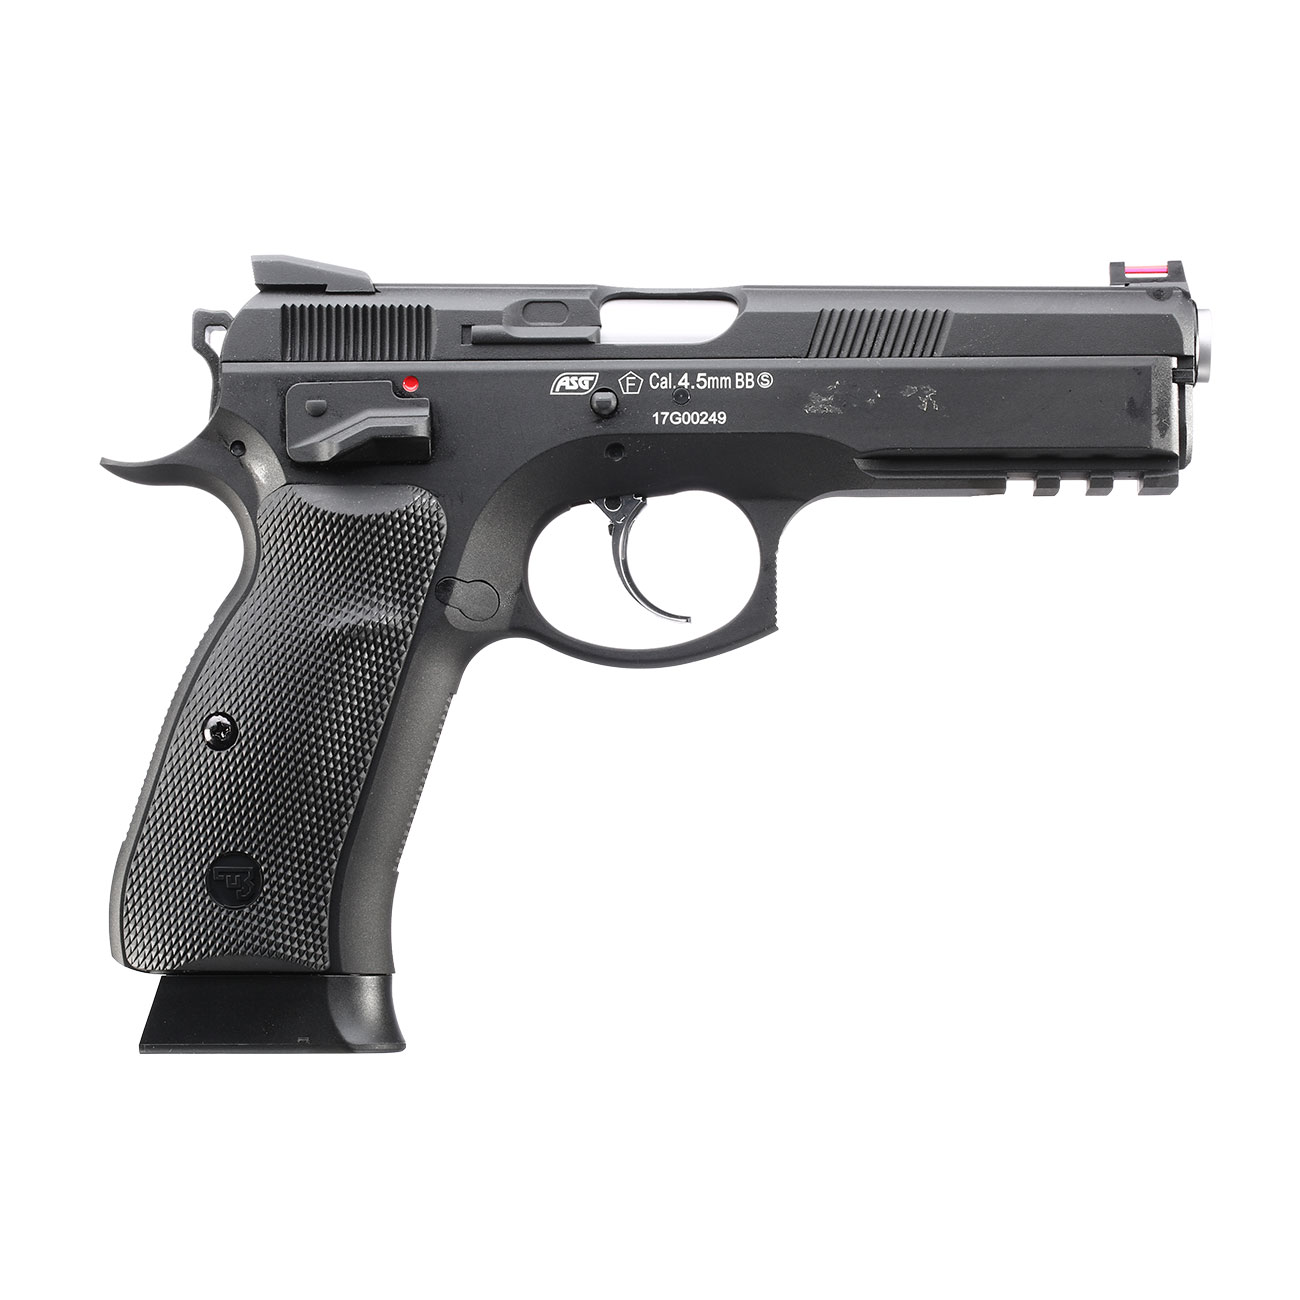 ASG CZ 75 SP-01 Shadow CO2-Luftpistole Kal. 4,5mm BB schwarz Vollmetall Blowback 5